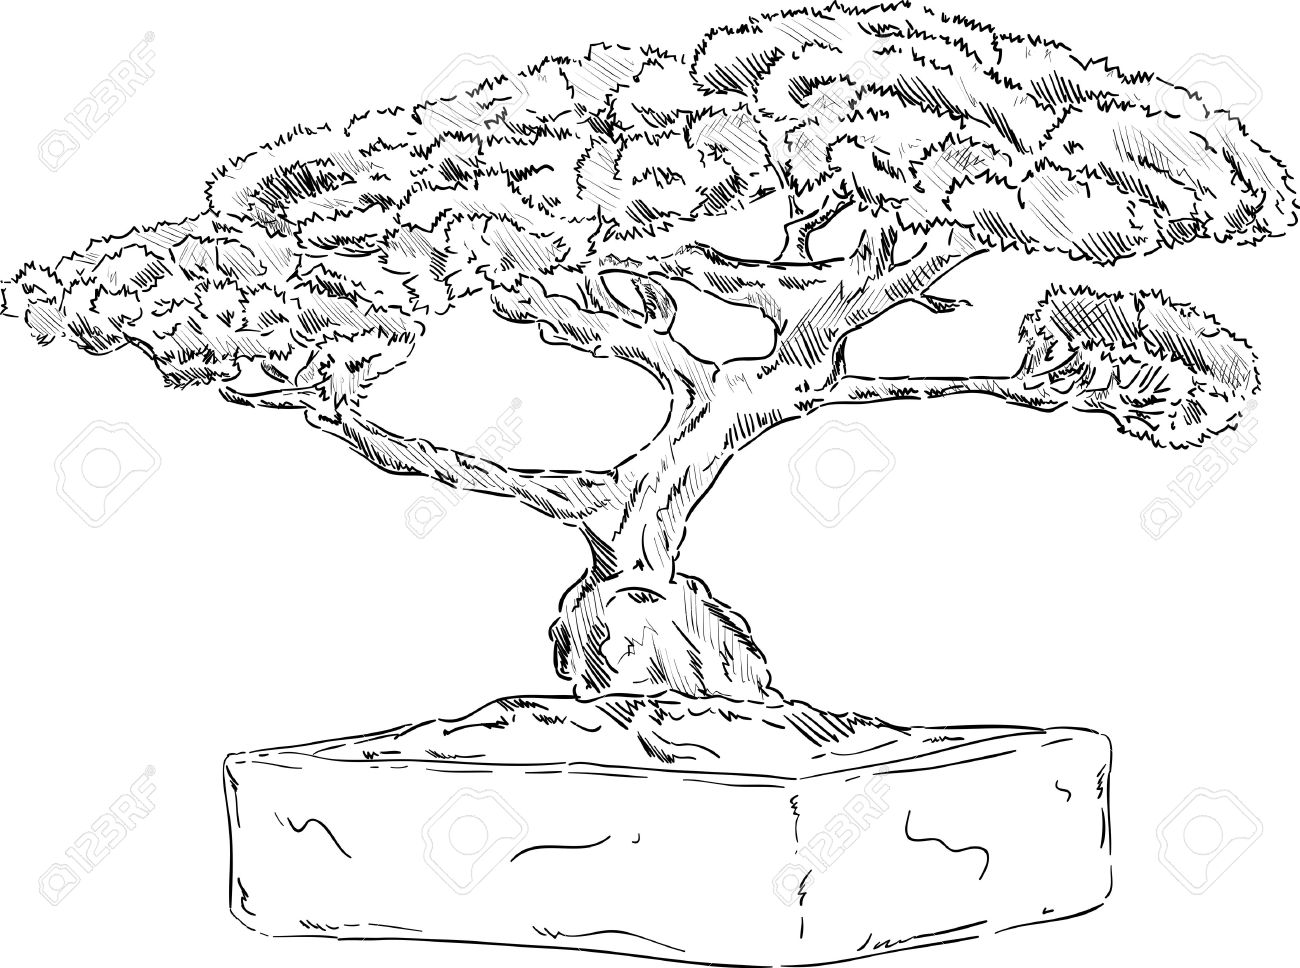 1300x968 Adult Bonsai Tree Drawing Bonsai Tree Drawing Easy. Bonsai Tree